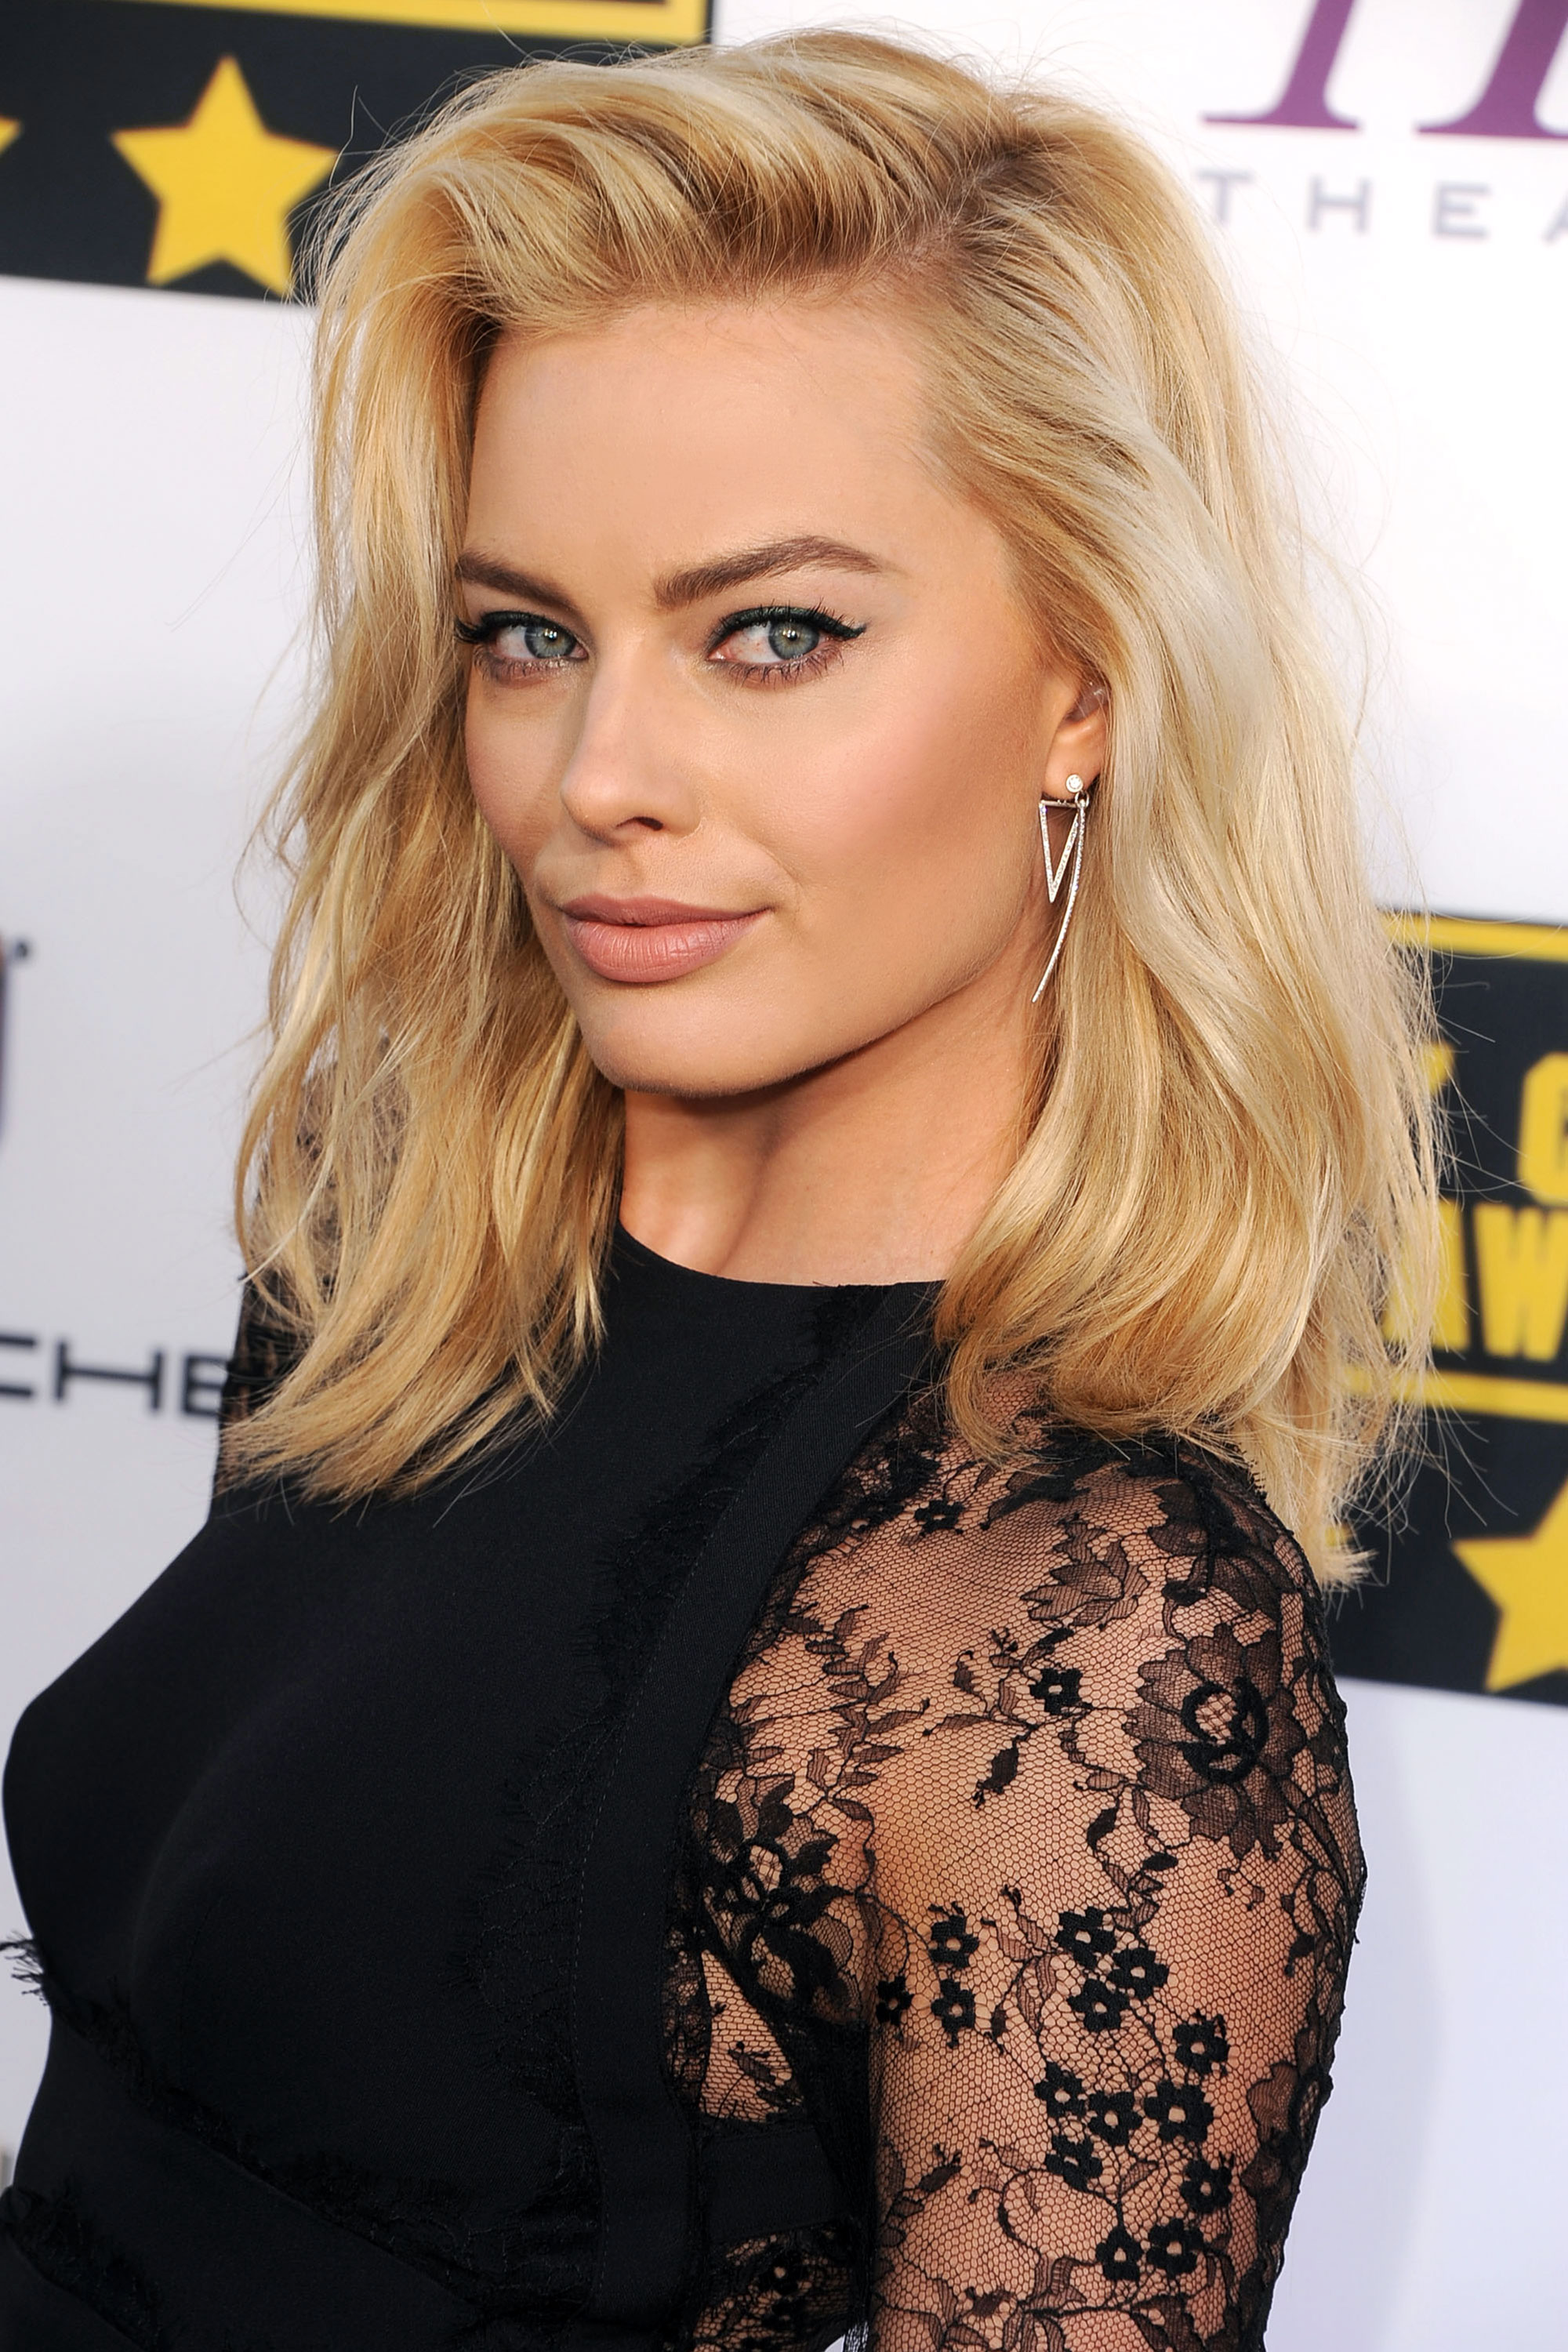 Miraculous 33 Best Medium Hairstyles Celebrities With Shoulder Length Haircuts Short Hairstyles For Black Women Fulllsitofus